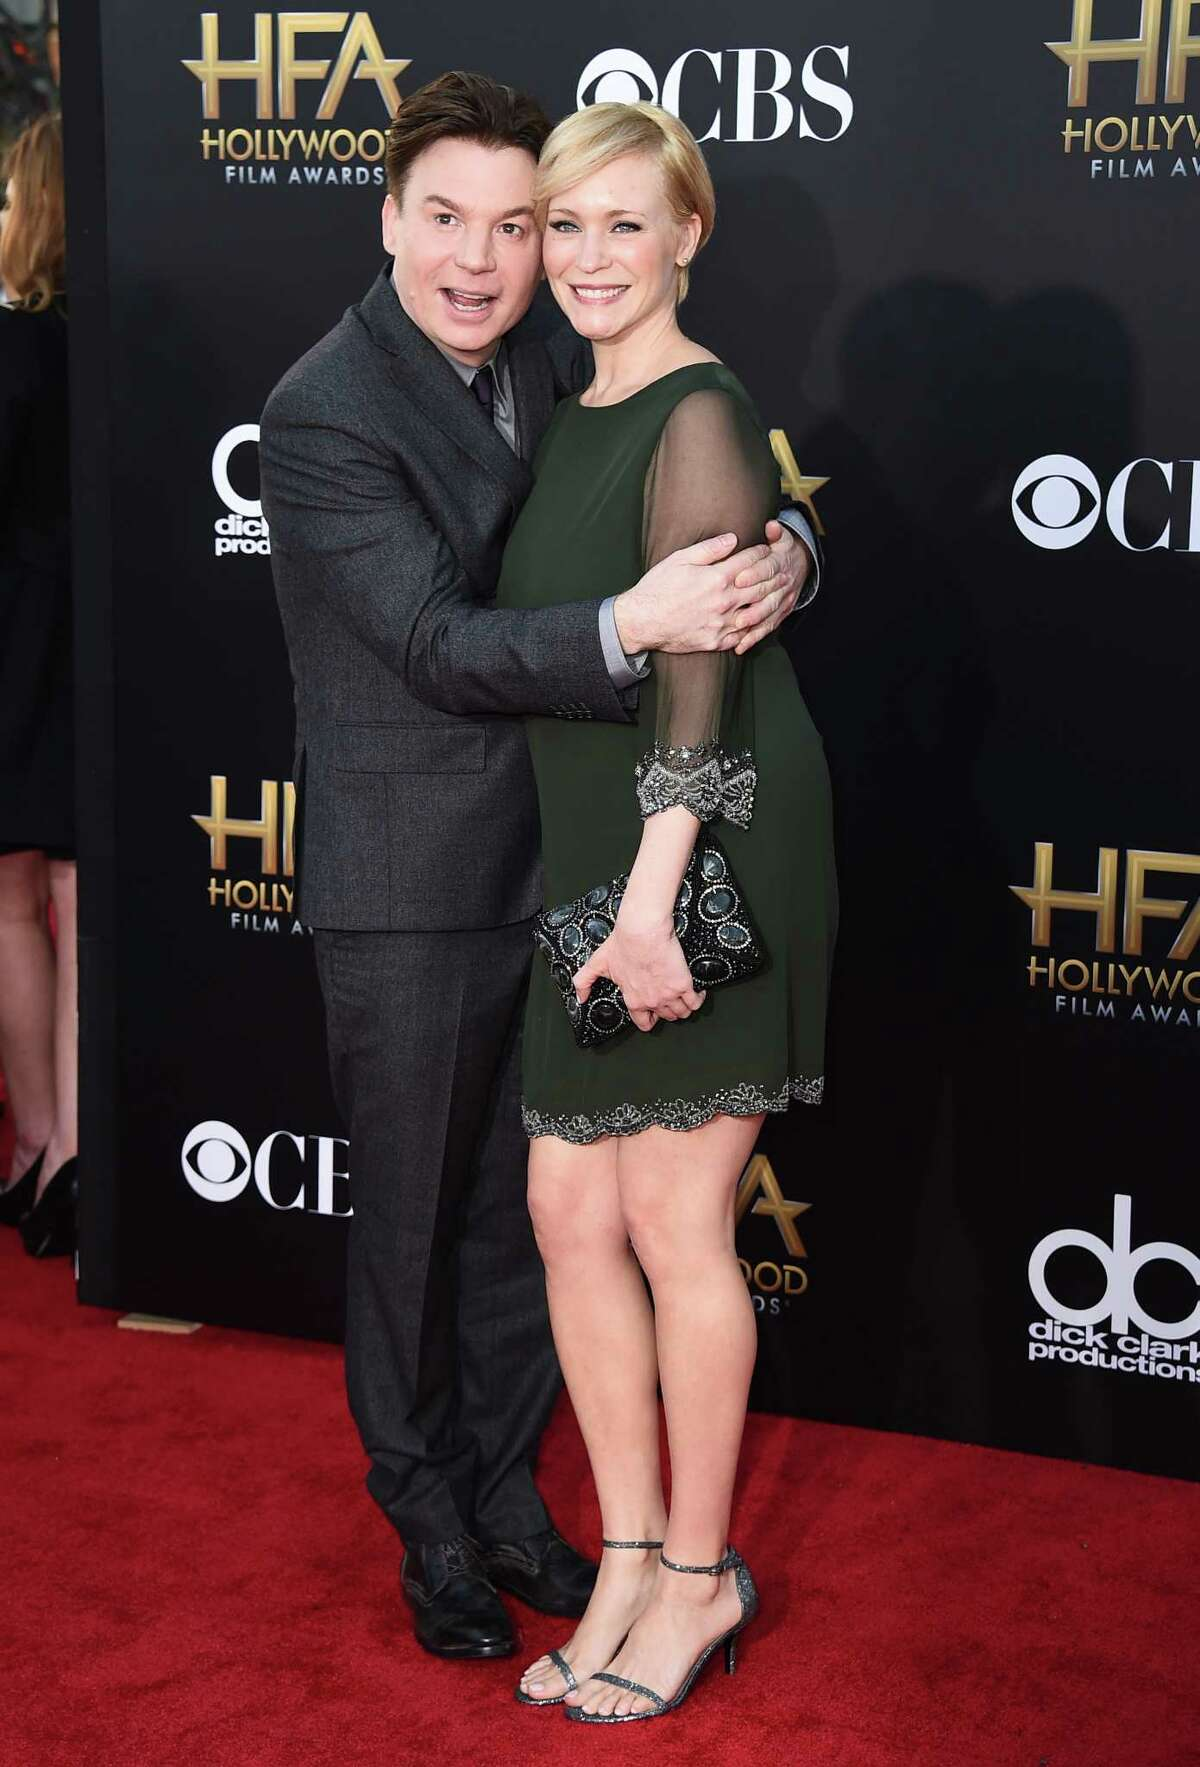 In this Nov. 14, 2014, file photo, Mike Myers, left, and Kelly Tisdale arrive at the Hollywood Film Awards at the Palladium in Los Angeles. A spokeswoman for Myers said that Kelly gave birth Monday, Nov. 2, 2015, to their daughter Paulina Kathleen in New York City.